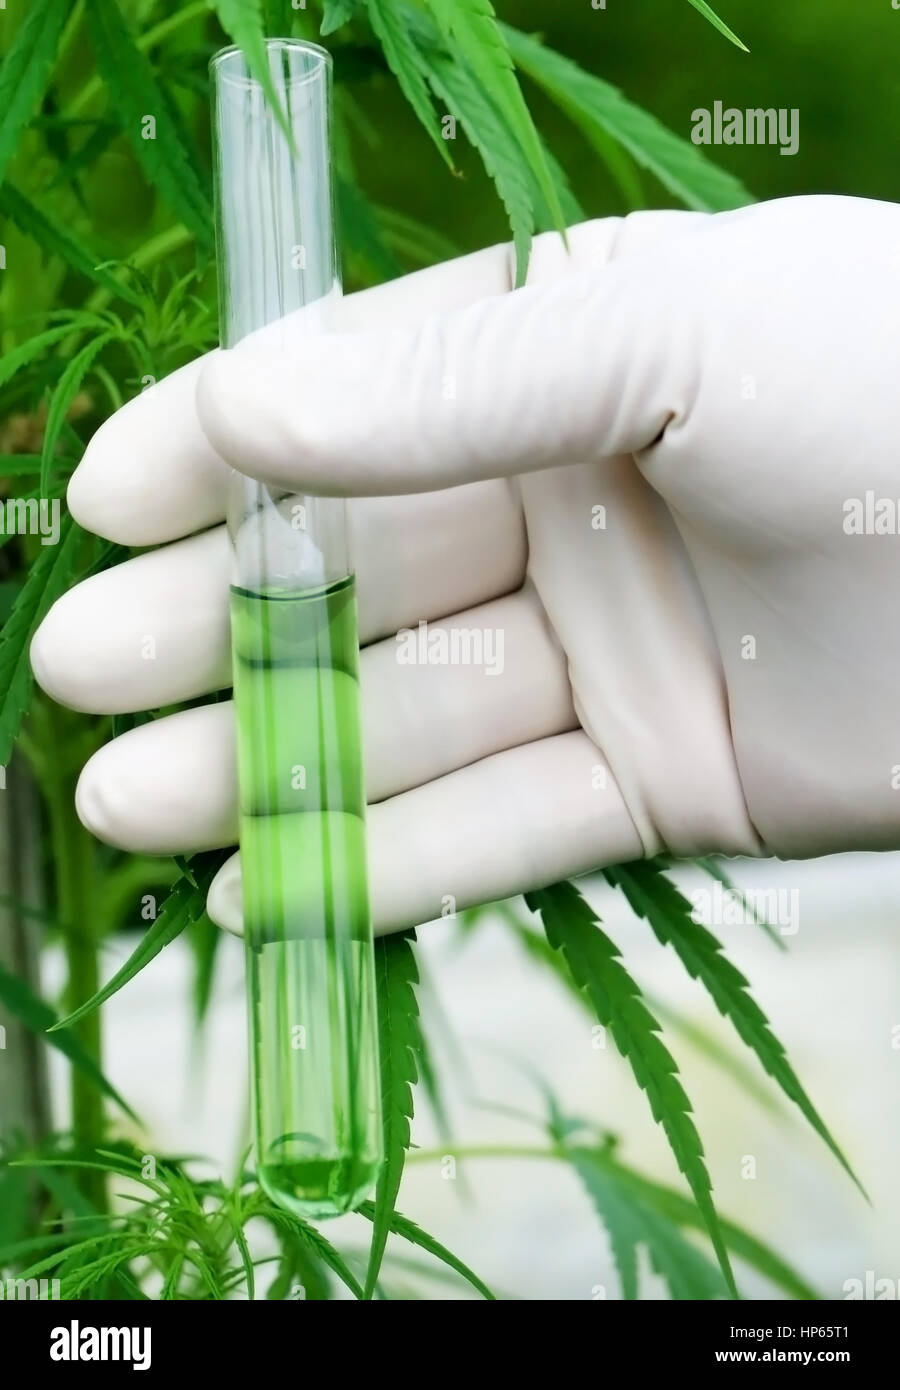 Cannabis extract in test tube holding by scientist - Stock Image